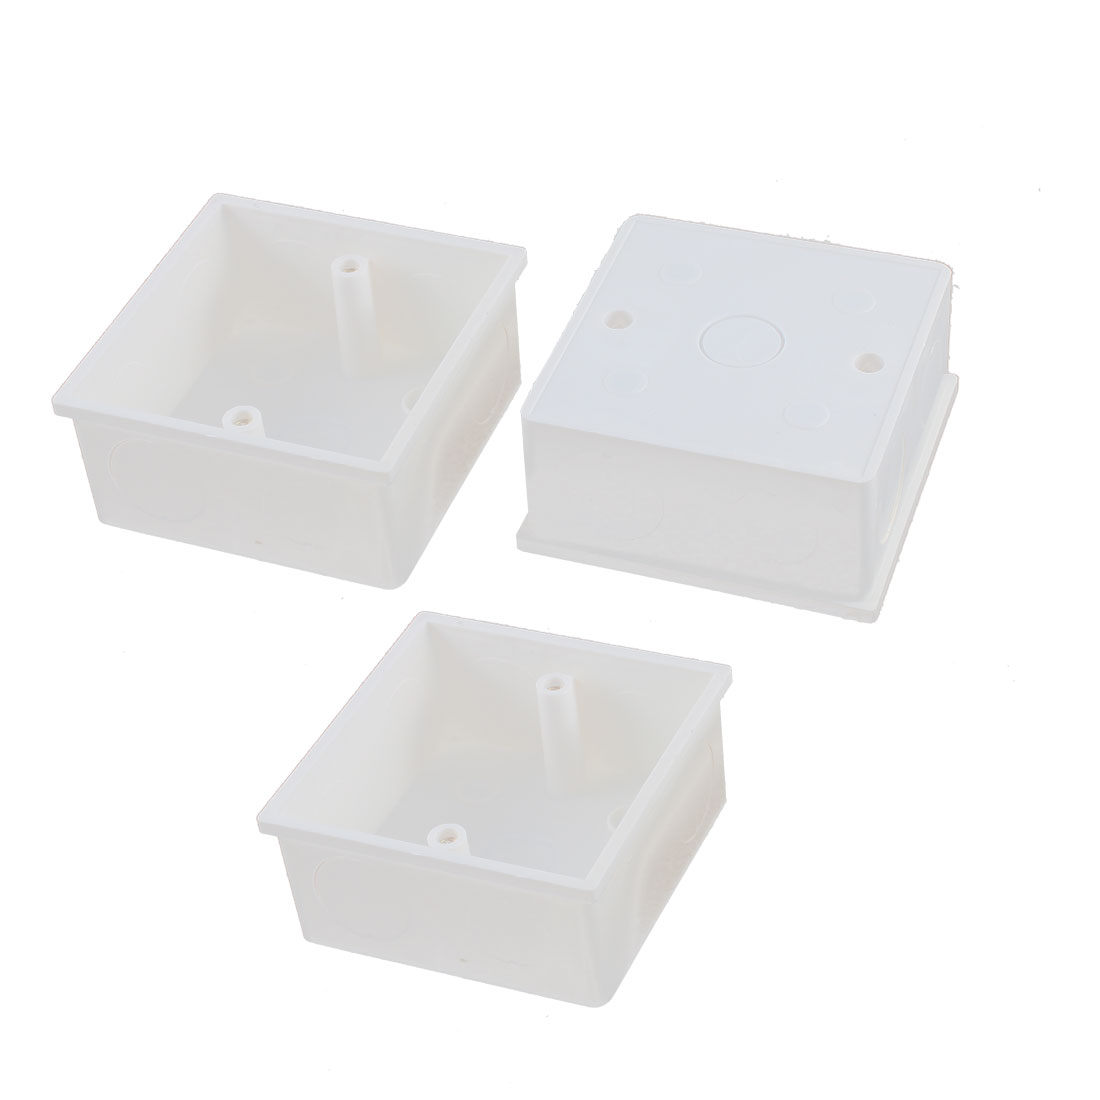 3pcs 86mm x 86mm x 40mm White PVC Single Gang Wiring Mount Back Box for Wall Socket